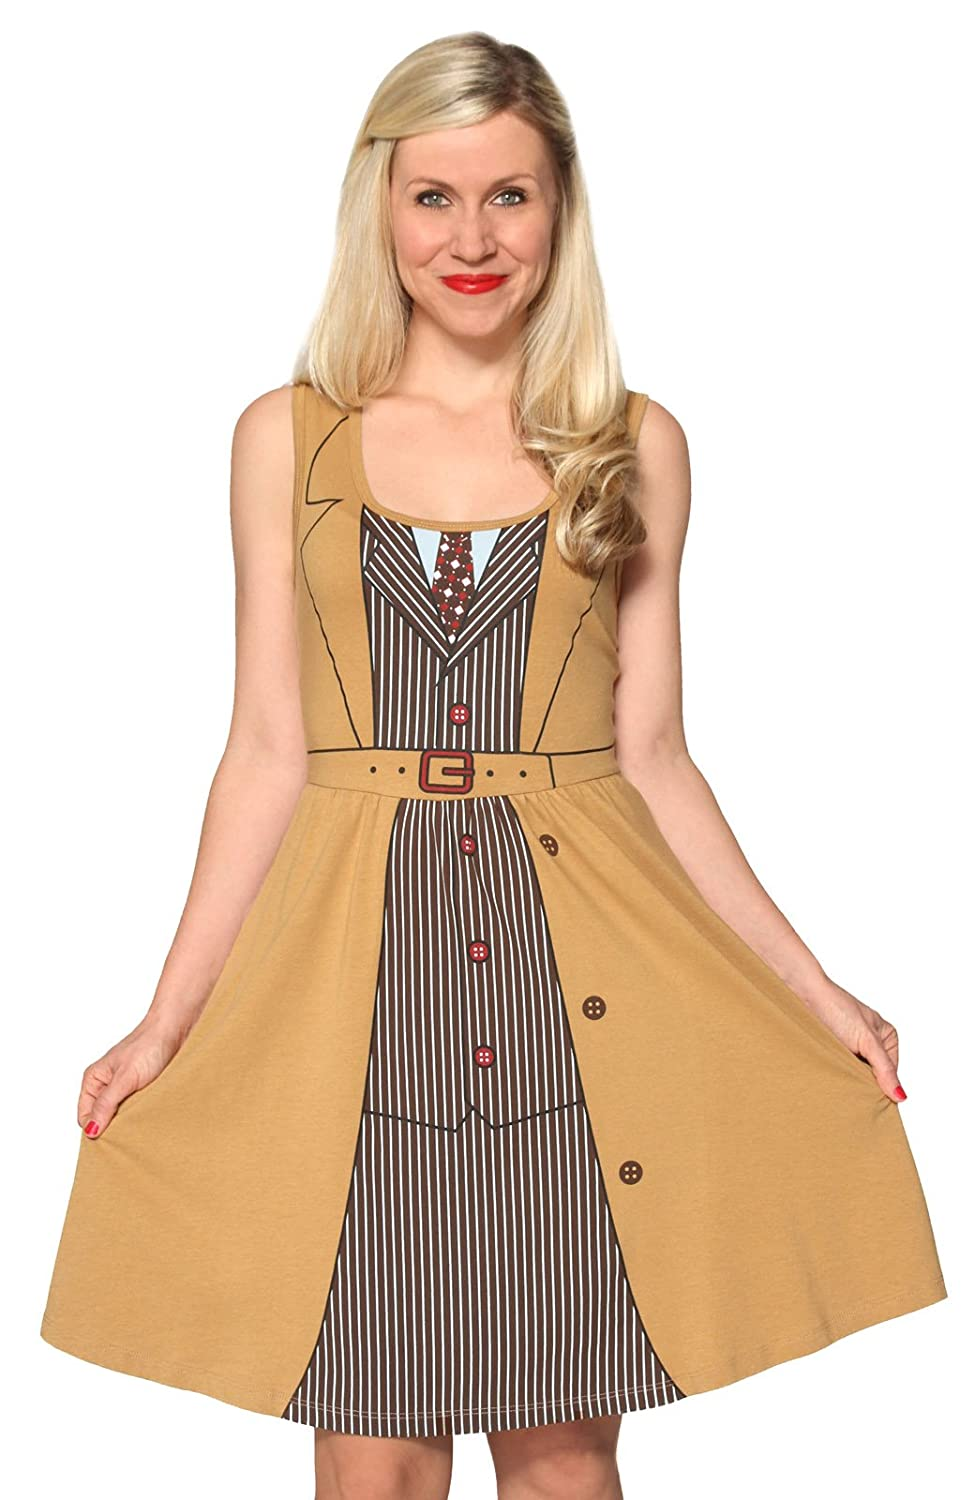 Doctor Who Her Universe David Tennant Tenth Doctor Costume Dress